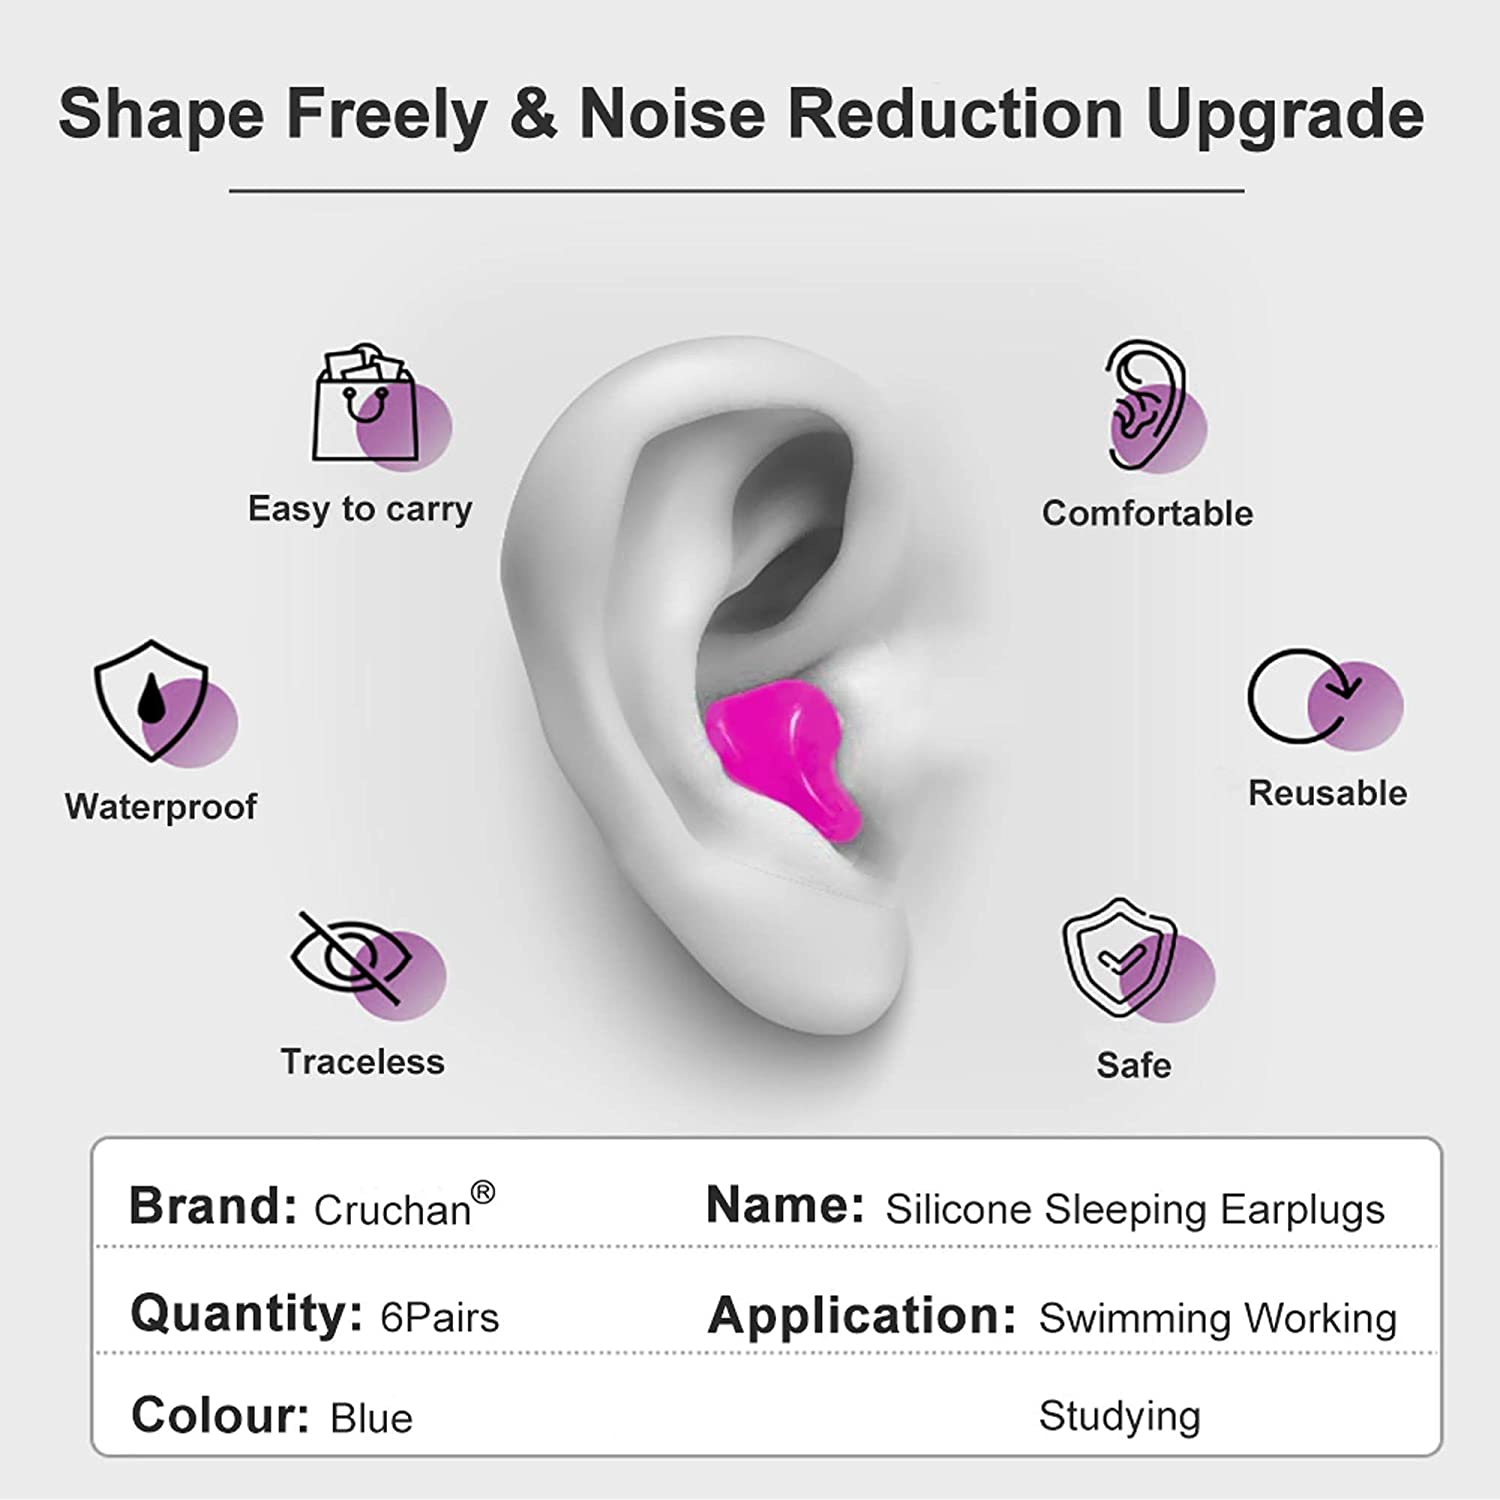 Ear Plugs Travel Loud Noise Work 6 Pairs Soft Reusable Moldable Silicone Earplugs Swimming Studying Concerts for Sleeping Noise Canceling Great for Snoring